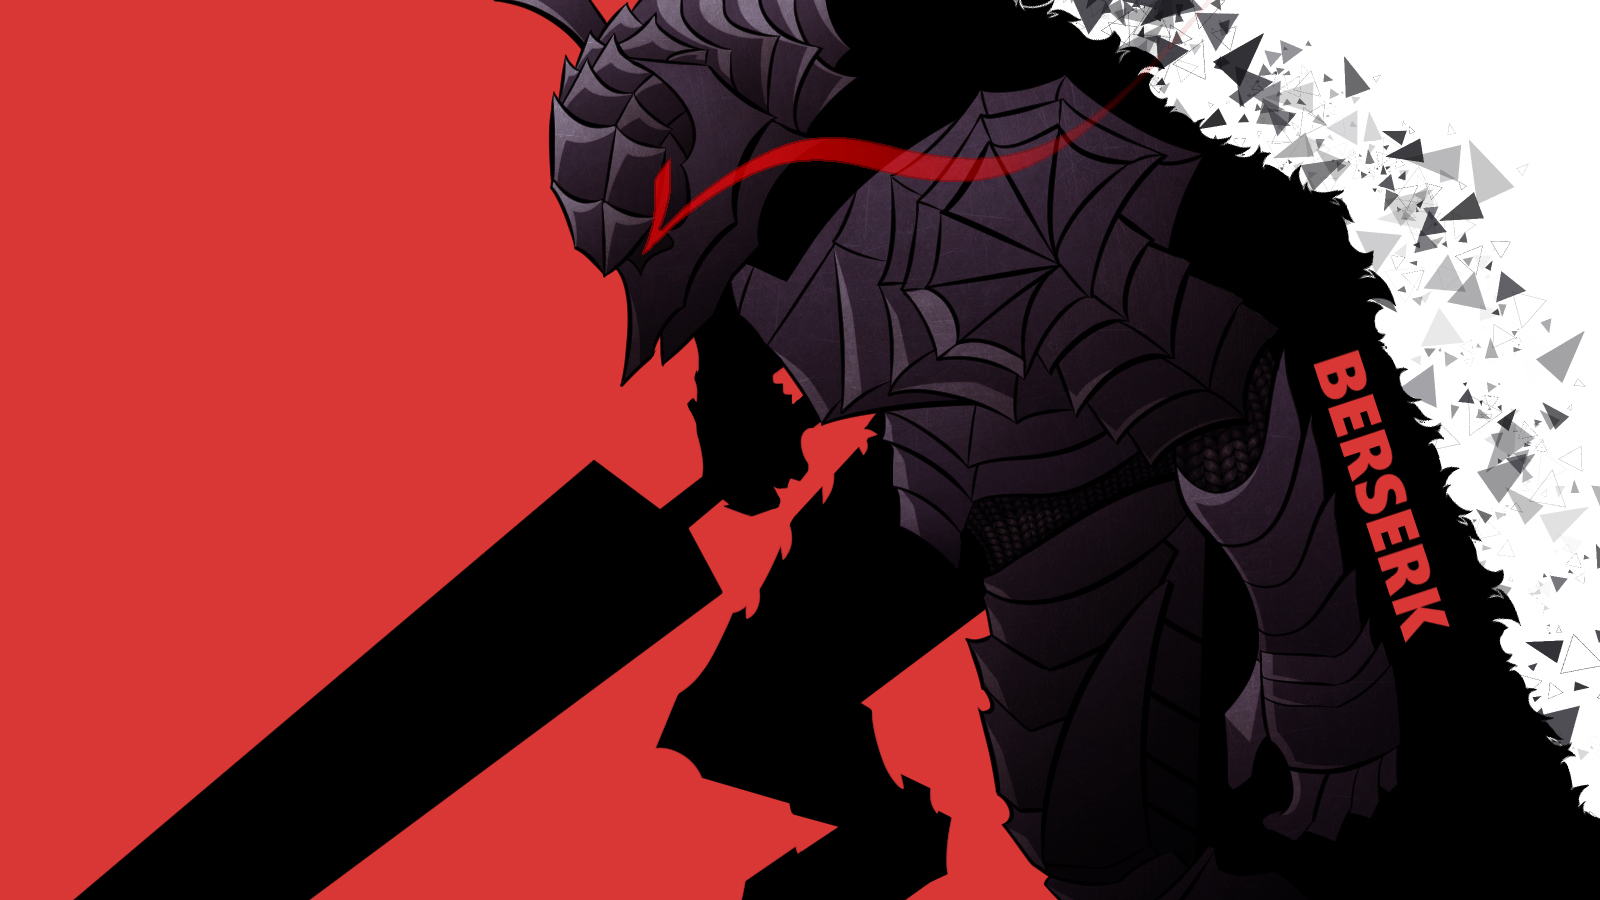 Anime Characters Like Guts : Berserk wallpaper and background image id